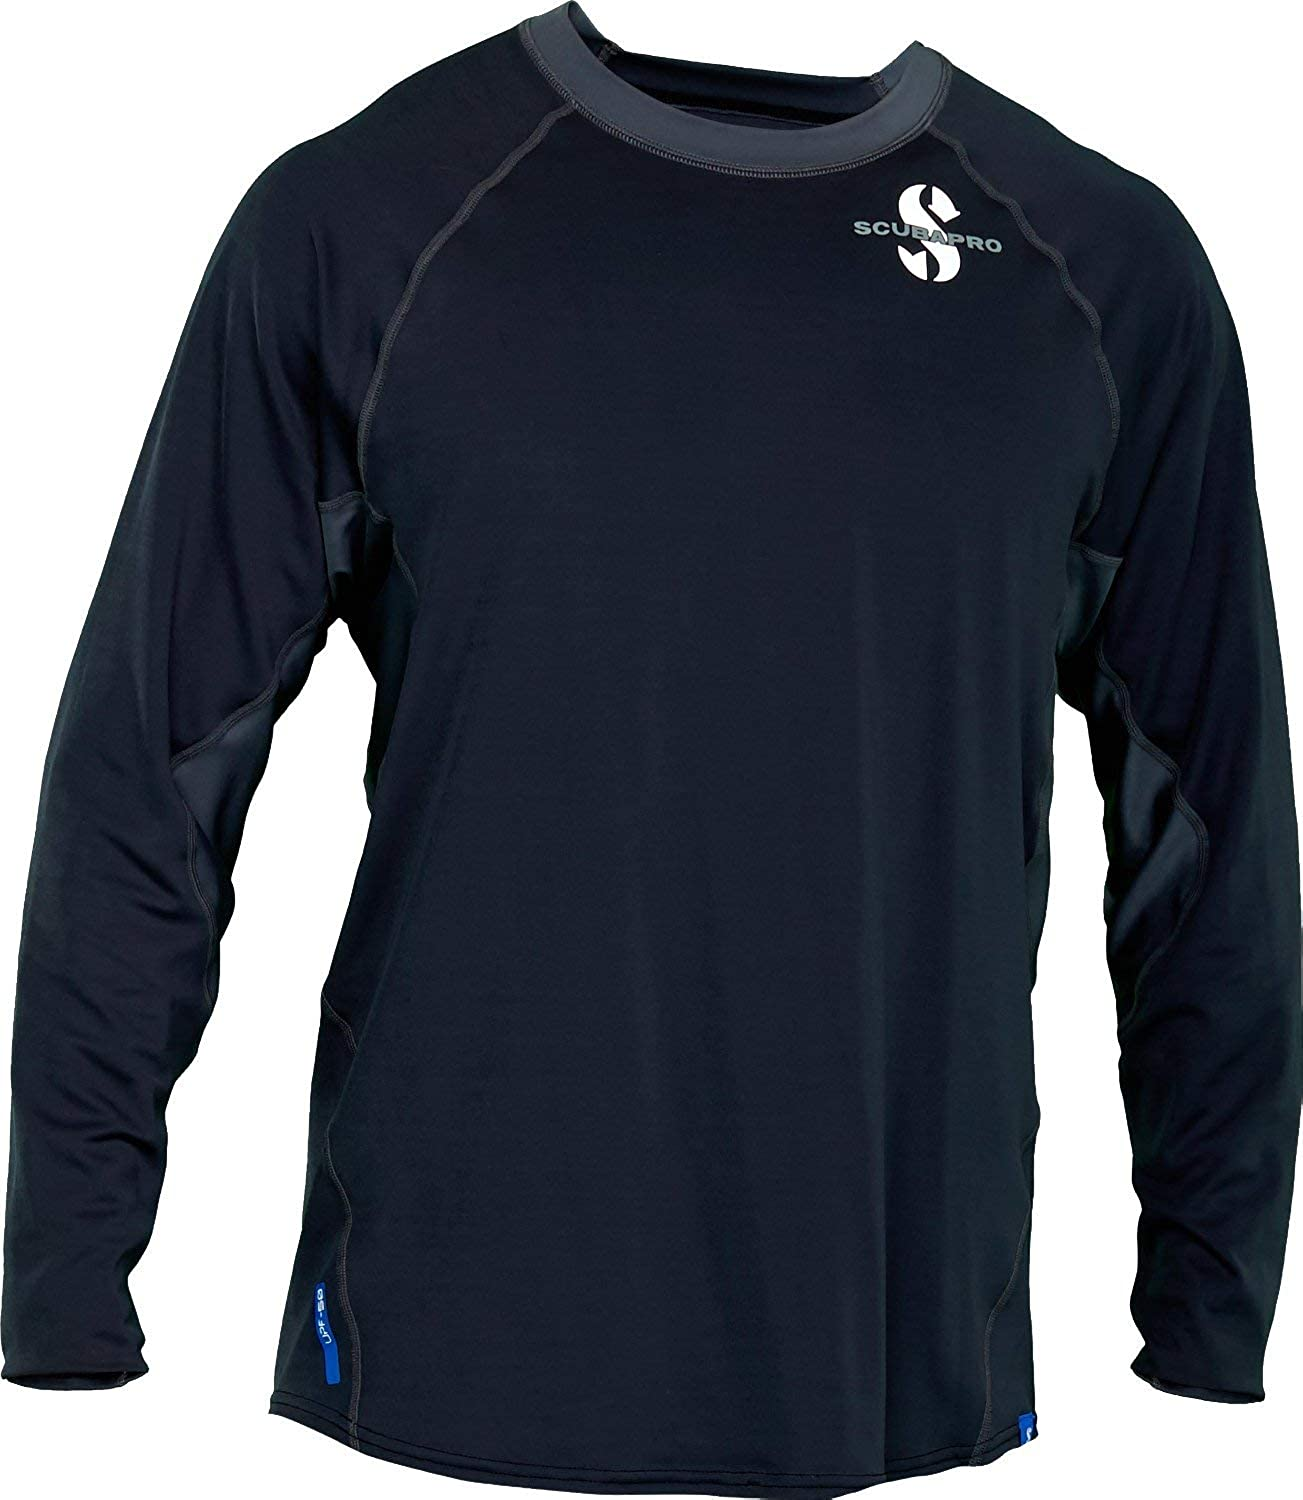 Scubapro Men's UPF 50 Channel Flow Long Sleeve Rash Guard